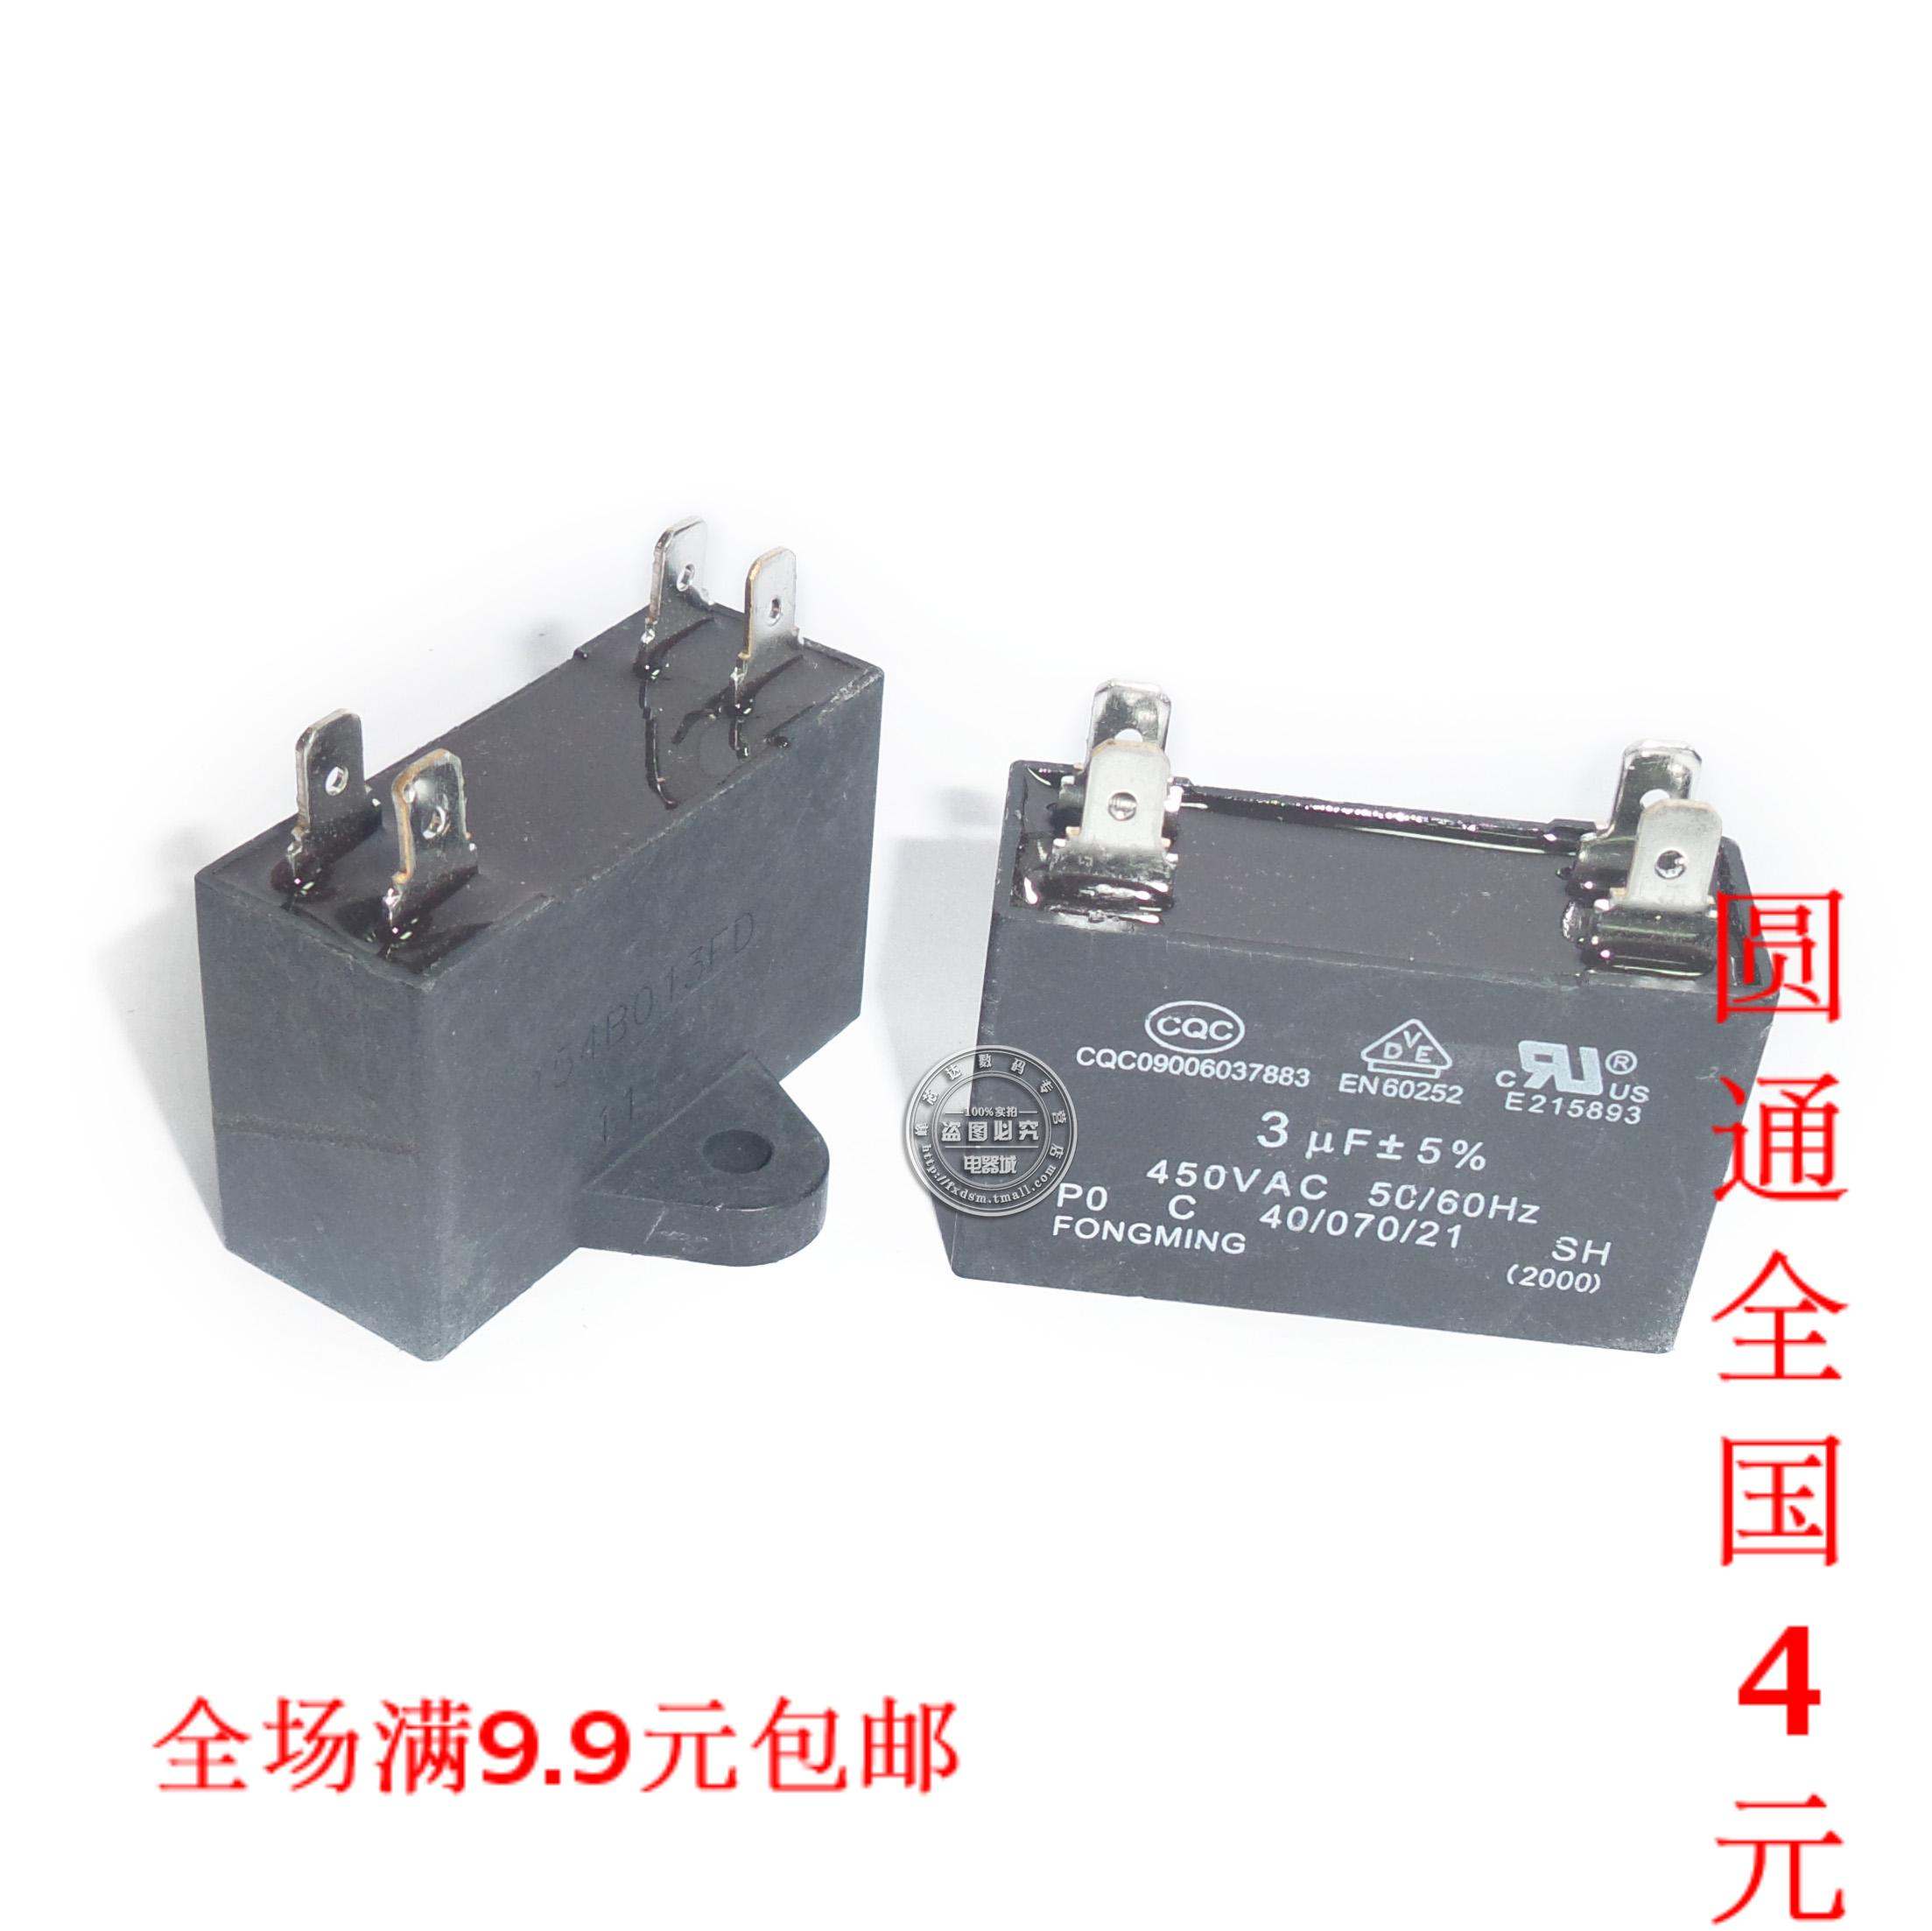 Rui broadcast shu air conditioning air conditioning fan capacitor start capacitor 3 uf 450 v cbb61 fan capacitor capacitance